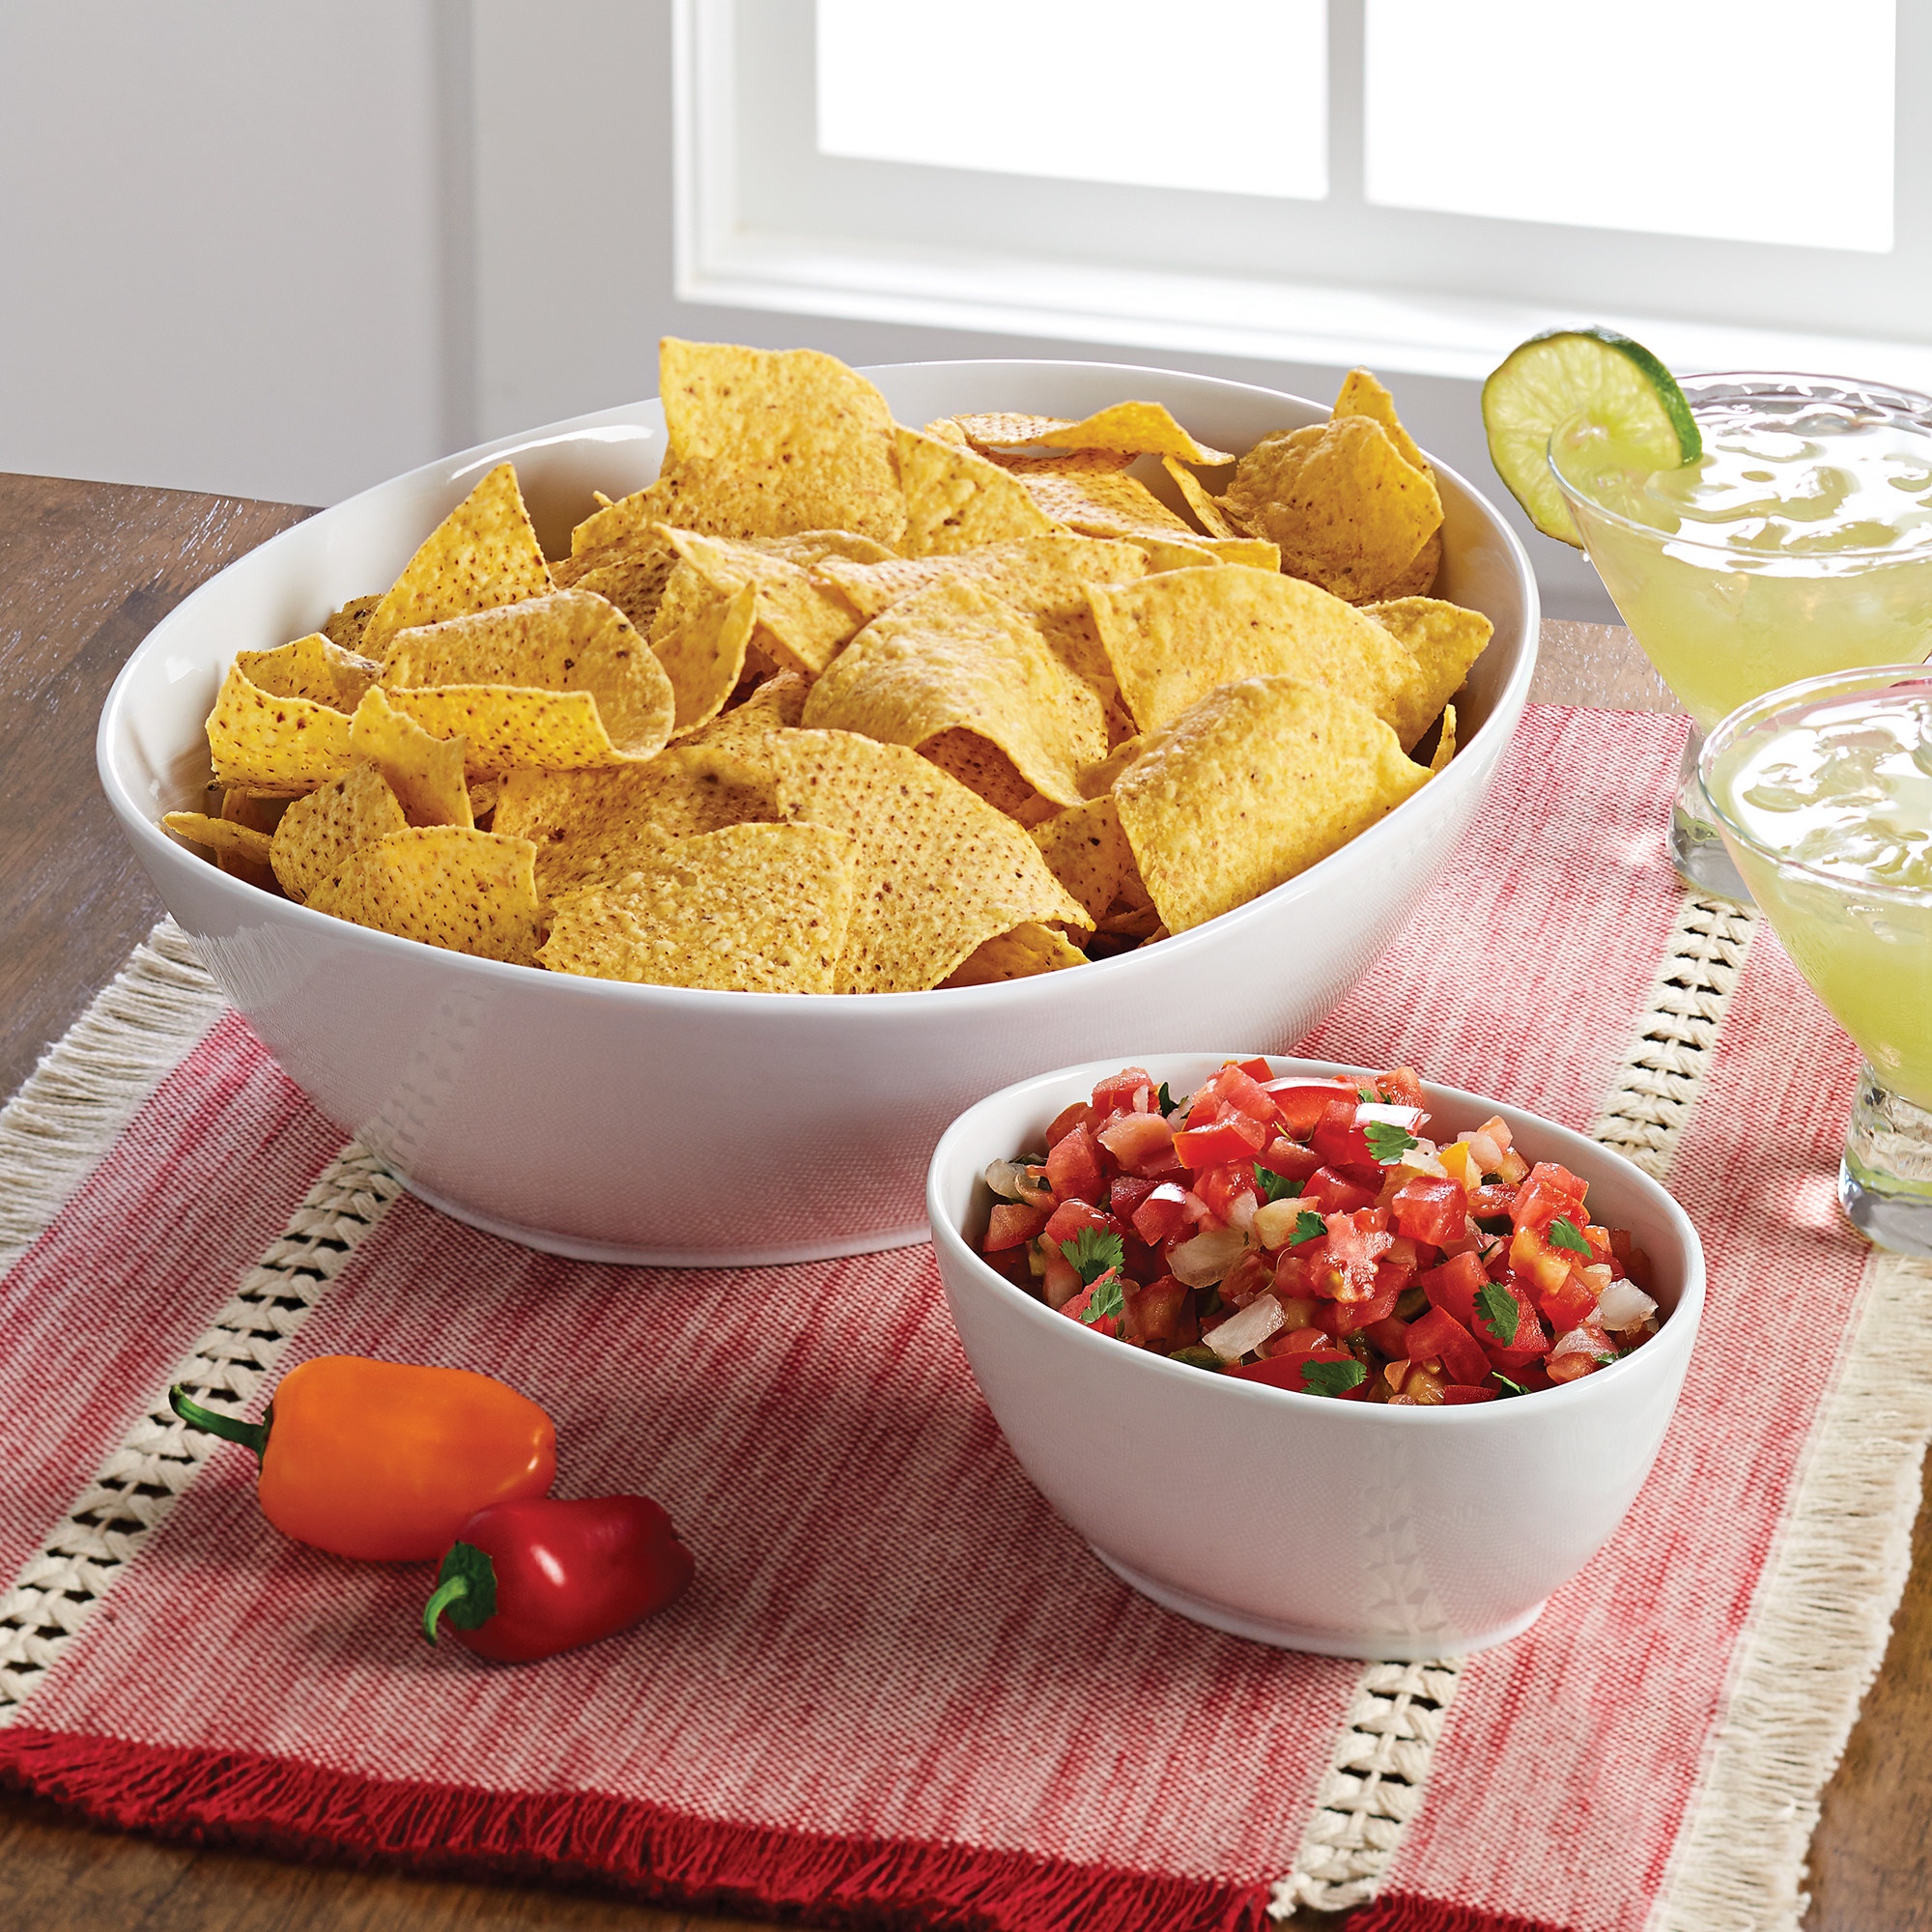 two porcelain bowls, one with tortilla chips and one with pico de gallo